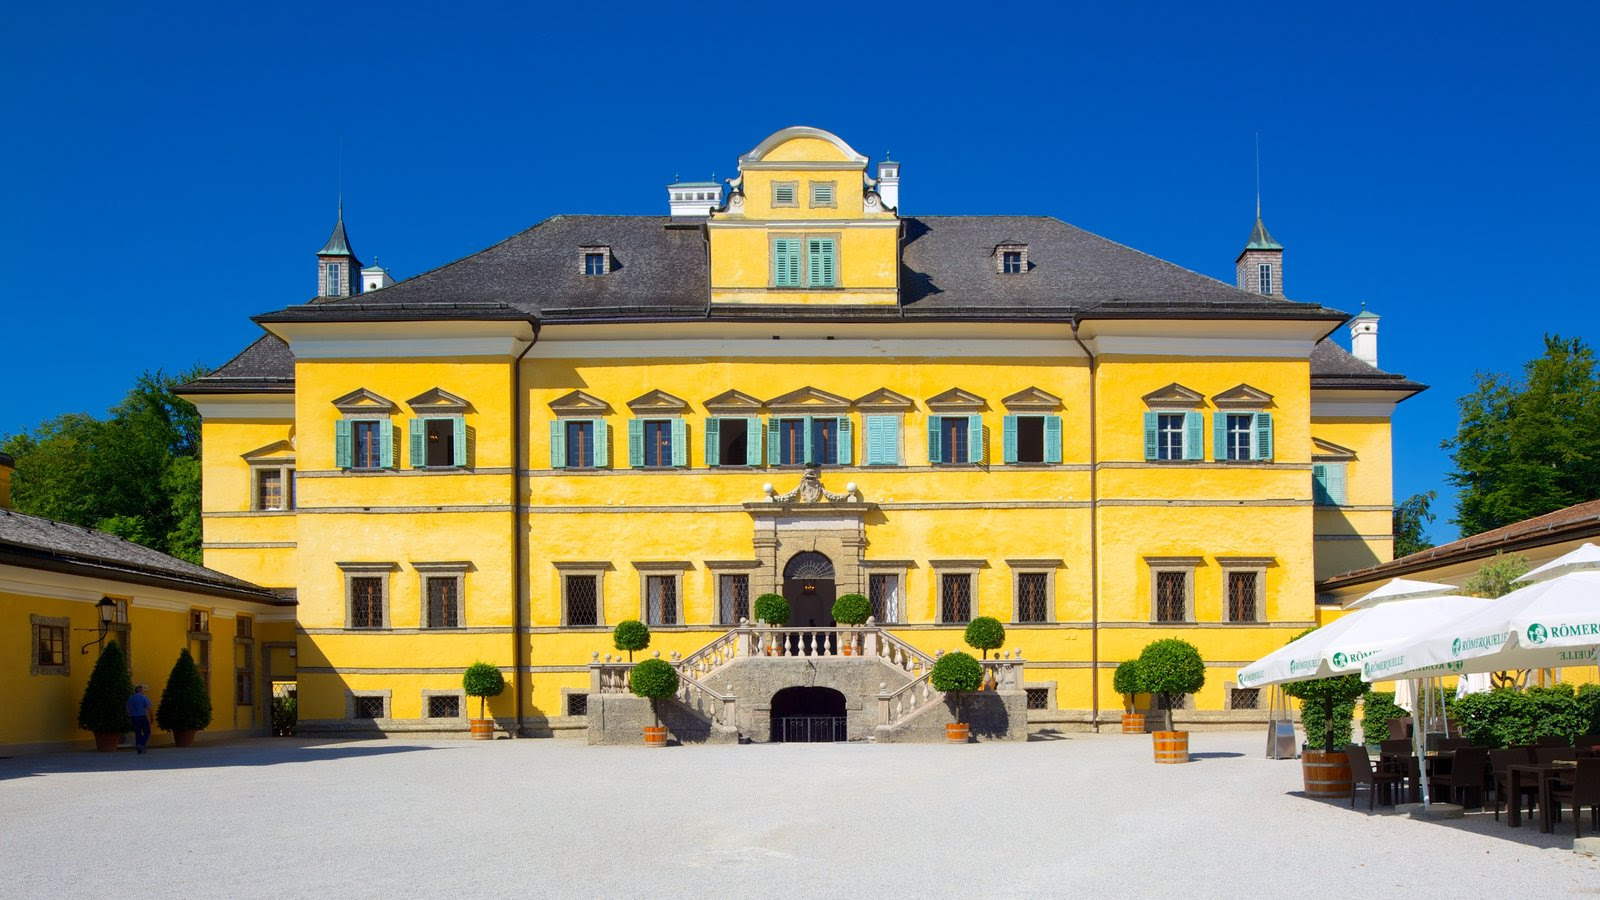 Image result for imge of hellbrunn palace salzburg